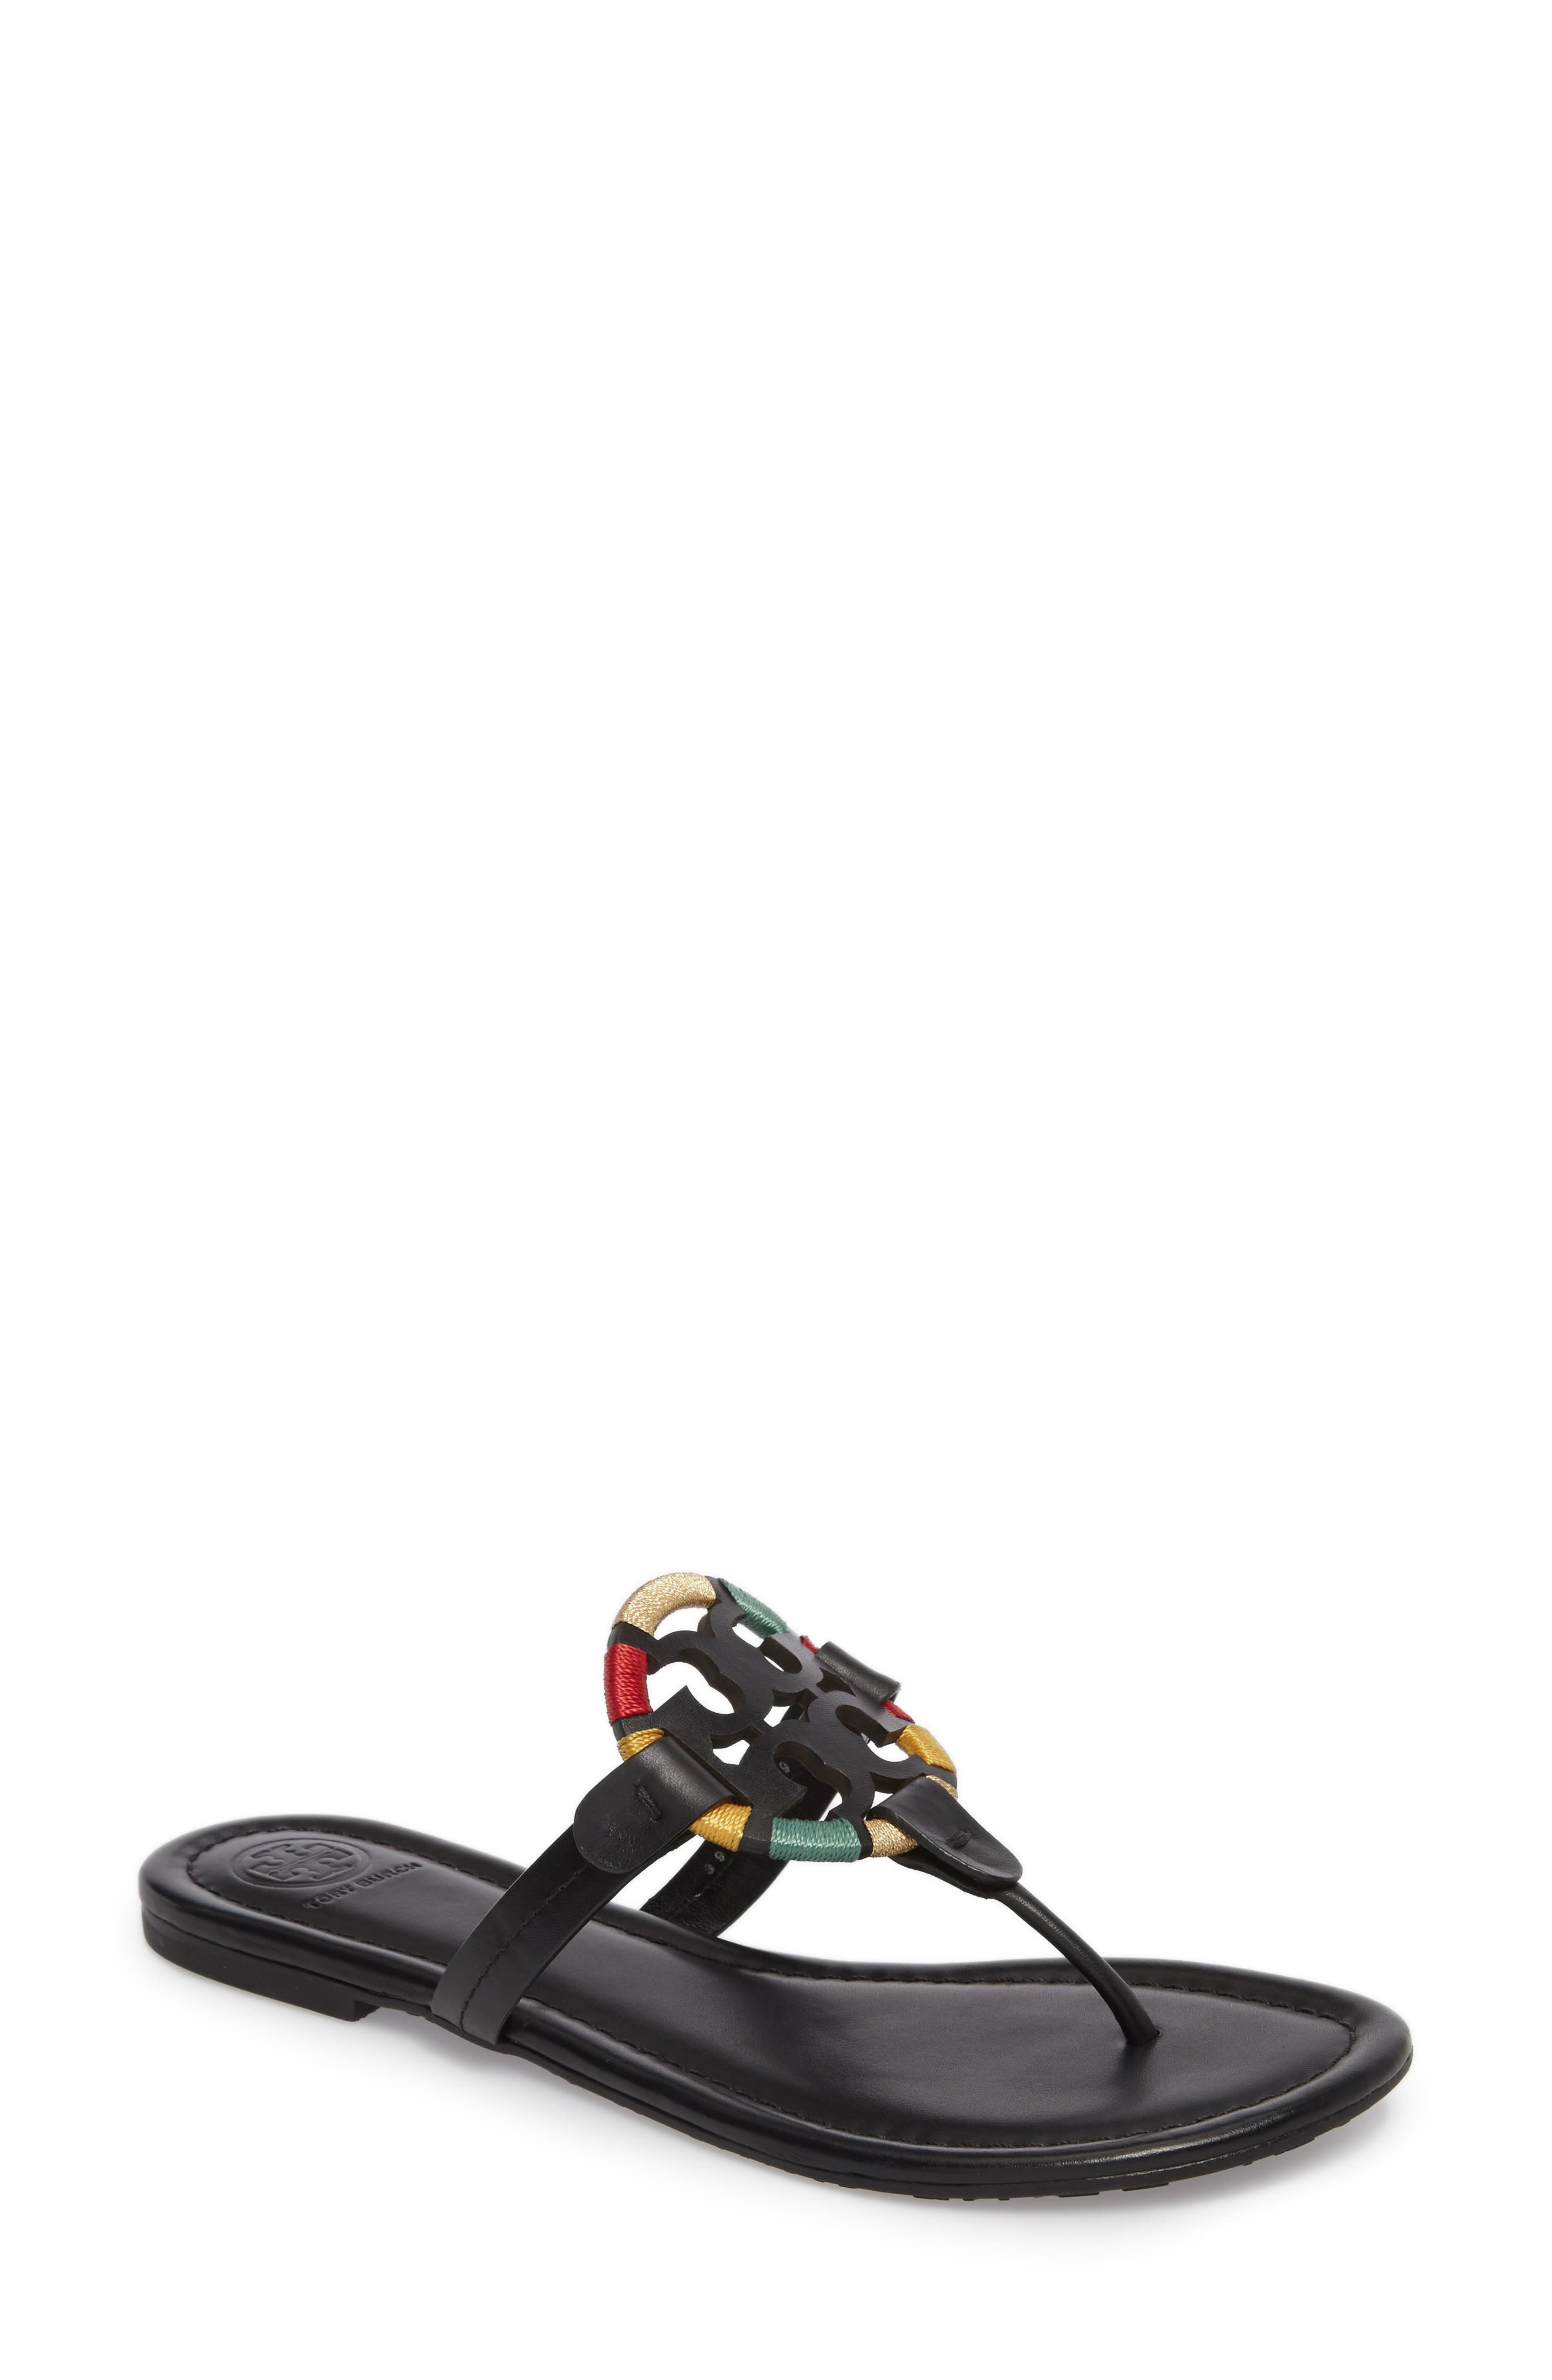 fcef45adc Tory Burch Miller Flat Embroidered Medallion Sandal In Black  Multi ...